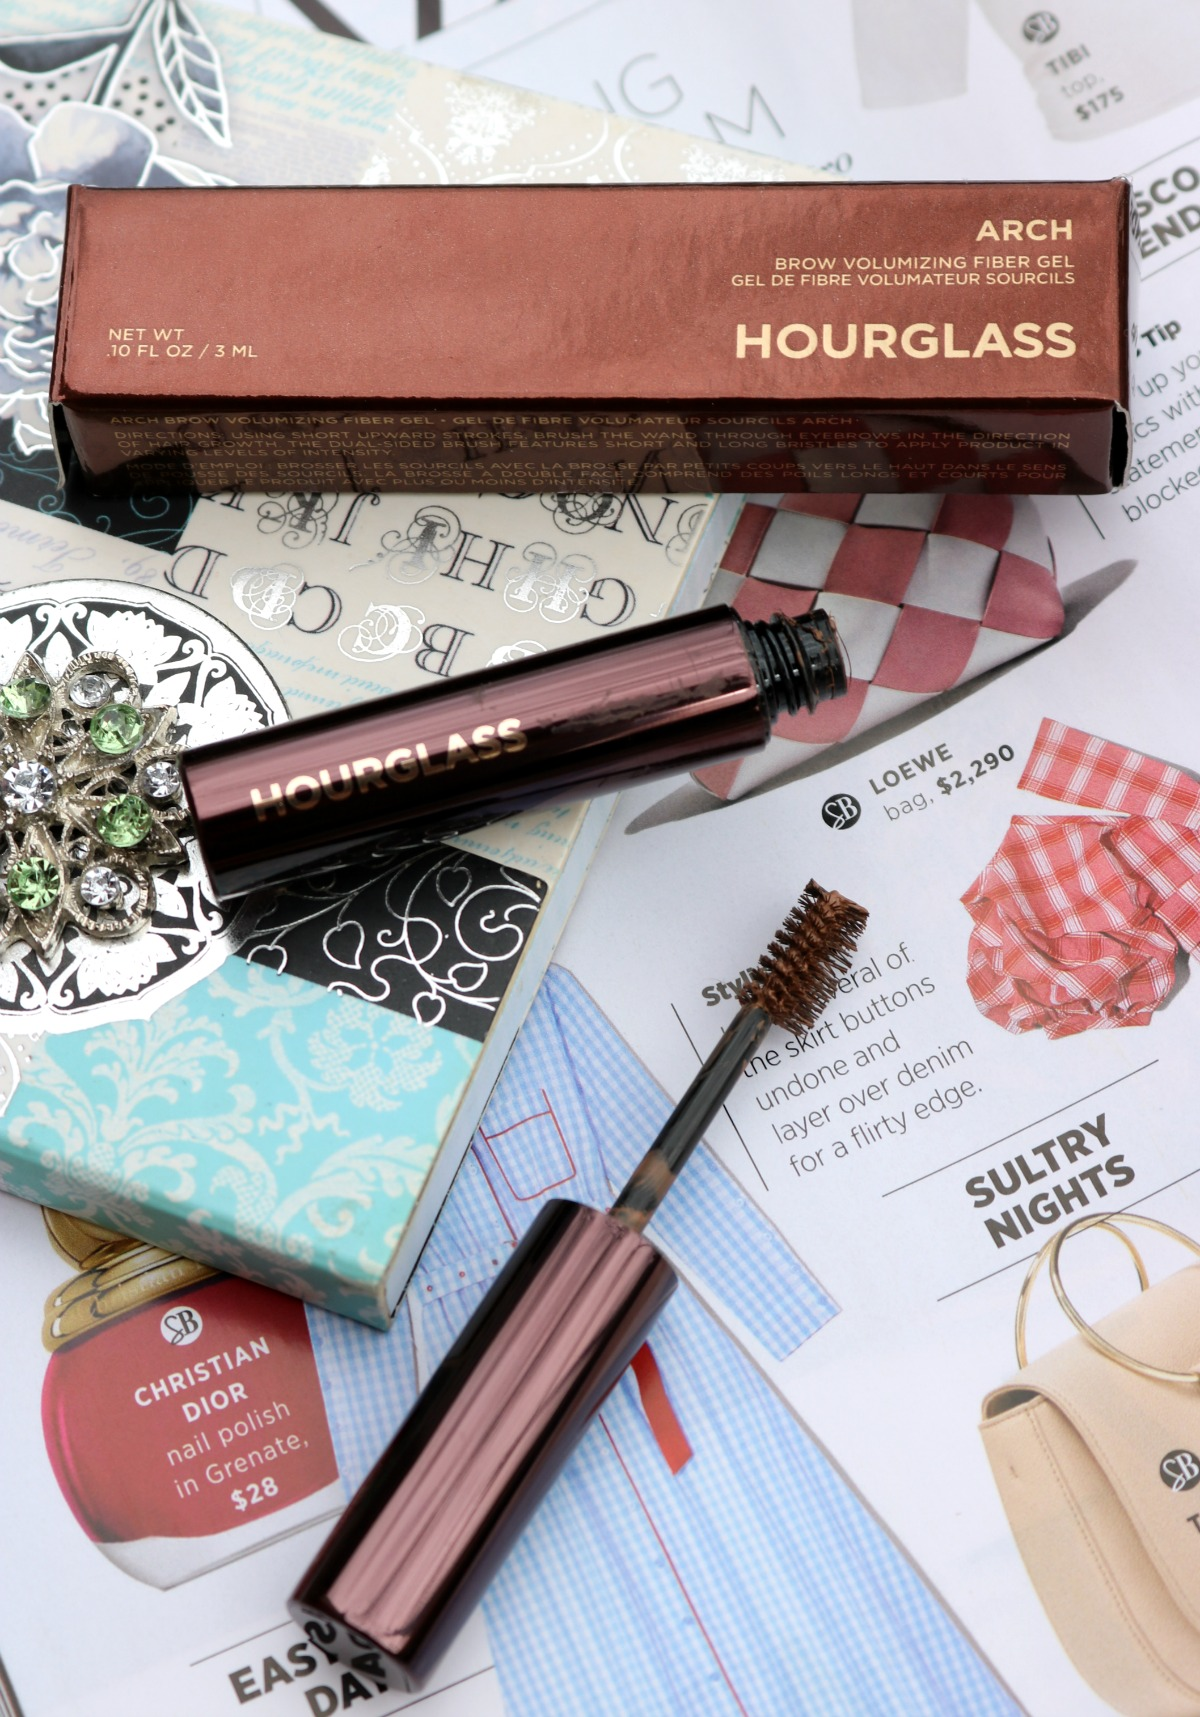 Most Popular Blog Posts of 2018 I Houglass Arch Brow Gel Review I Voluminizing Fiber Eyebrow Gel #CrueltyFree #Eyebrows